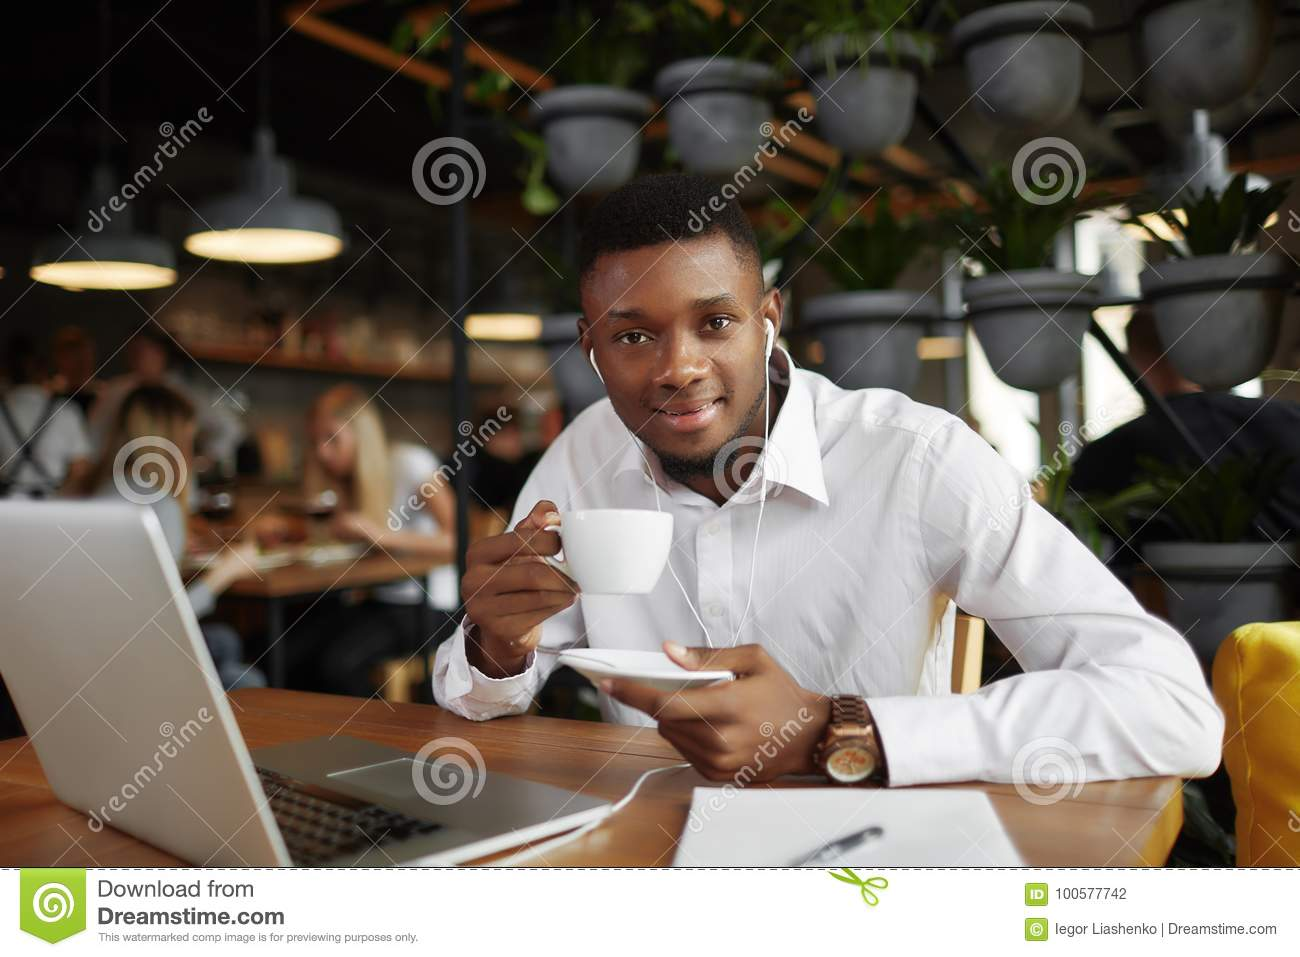 Smiling african man at coffee break in cafe.